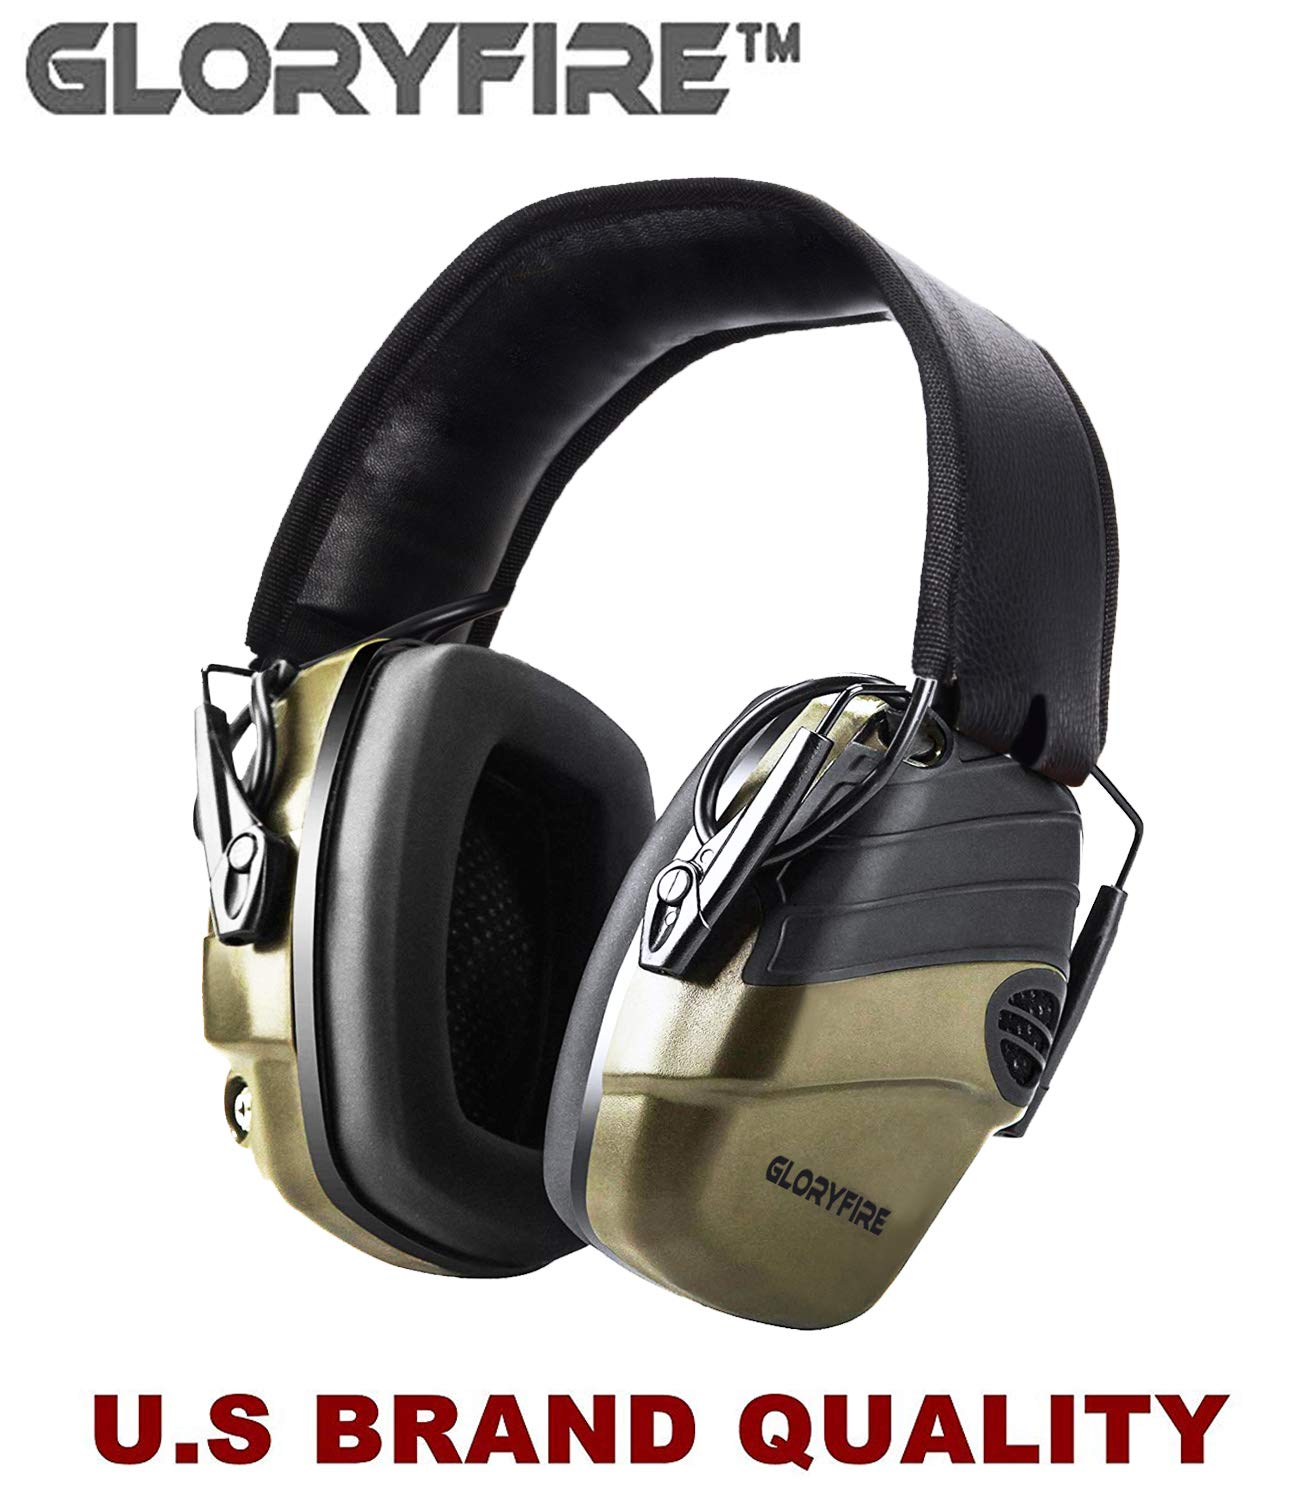 GLORYFIRE Electronic Shooting Earmuff Sound Amplification 6 Times Electric Earmuffs Perfect for Hunting and Shooting by GLORYFIRE